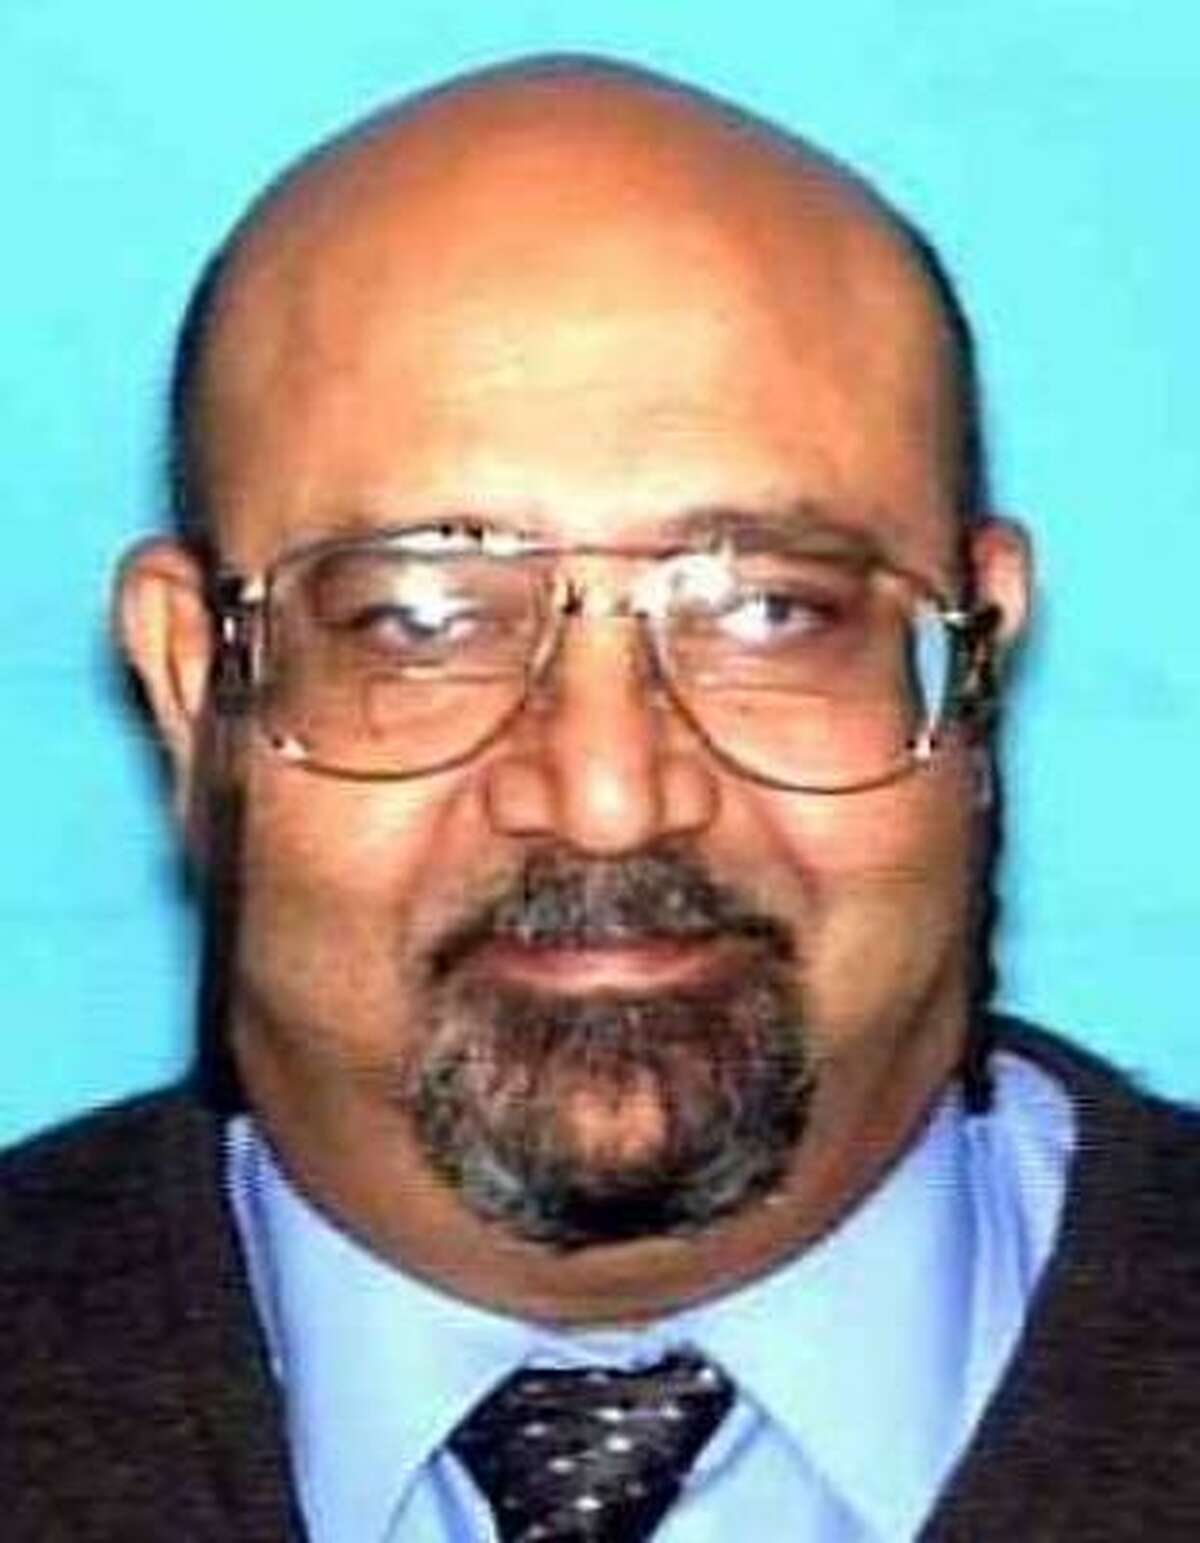 Joe Fernandes, 54, was working behind the counter at Siesta Food Mart when three men robbed him at gunpoint then shot and killed him.